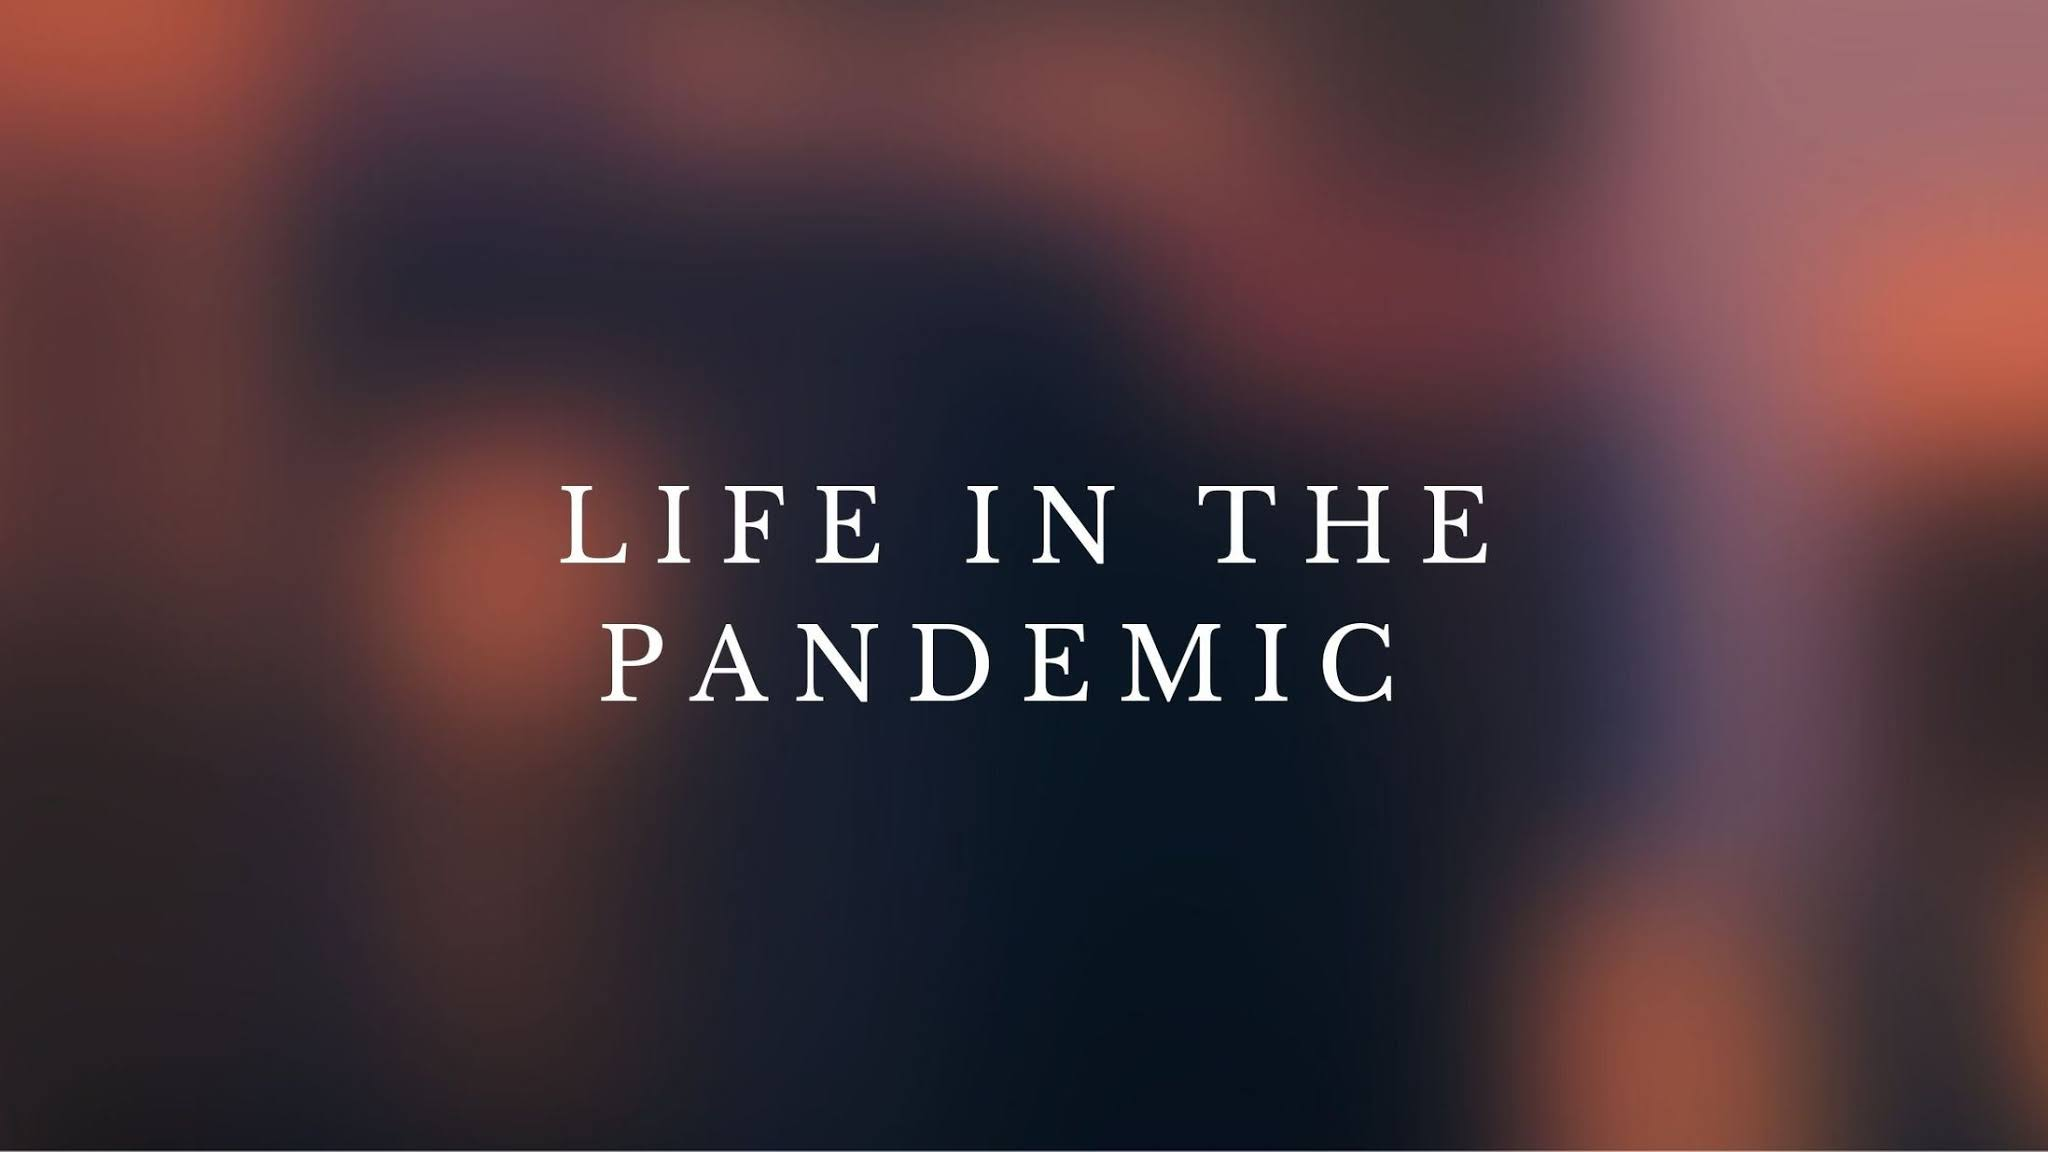 Life in the pandemic